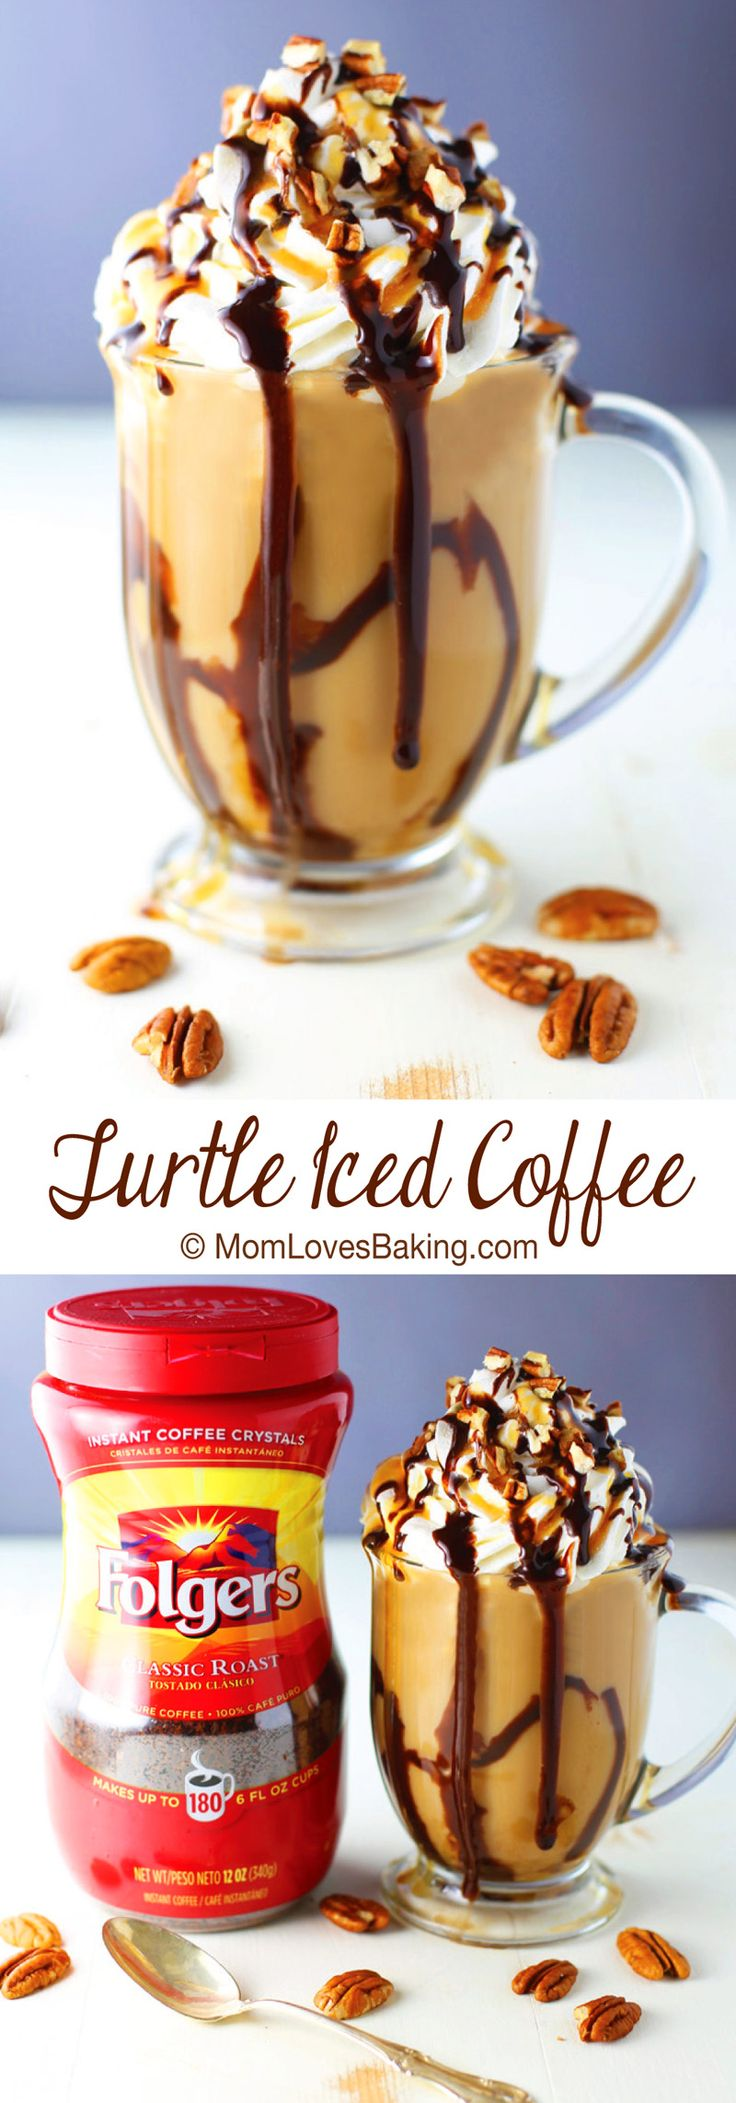 Turtle Iced Coffee has all the flavors of the famous candy without all the calories. Such a fun drink. Why not have a little turtle in you coffee! #ad #folgers